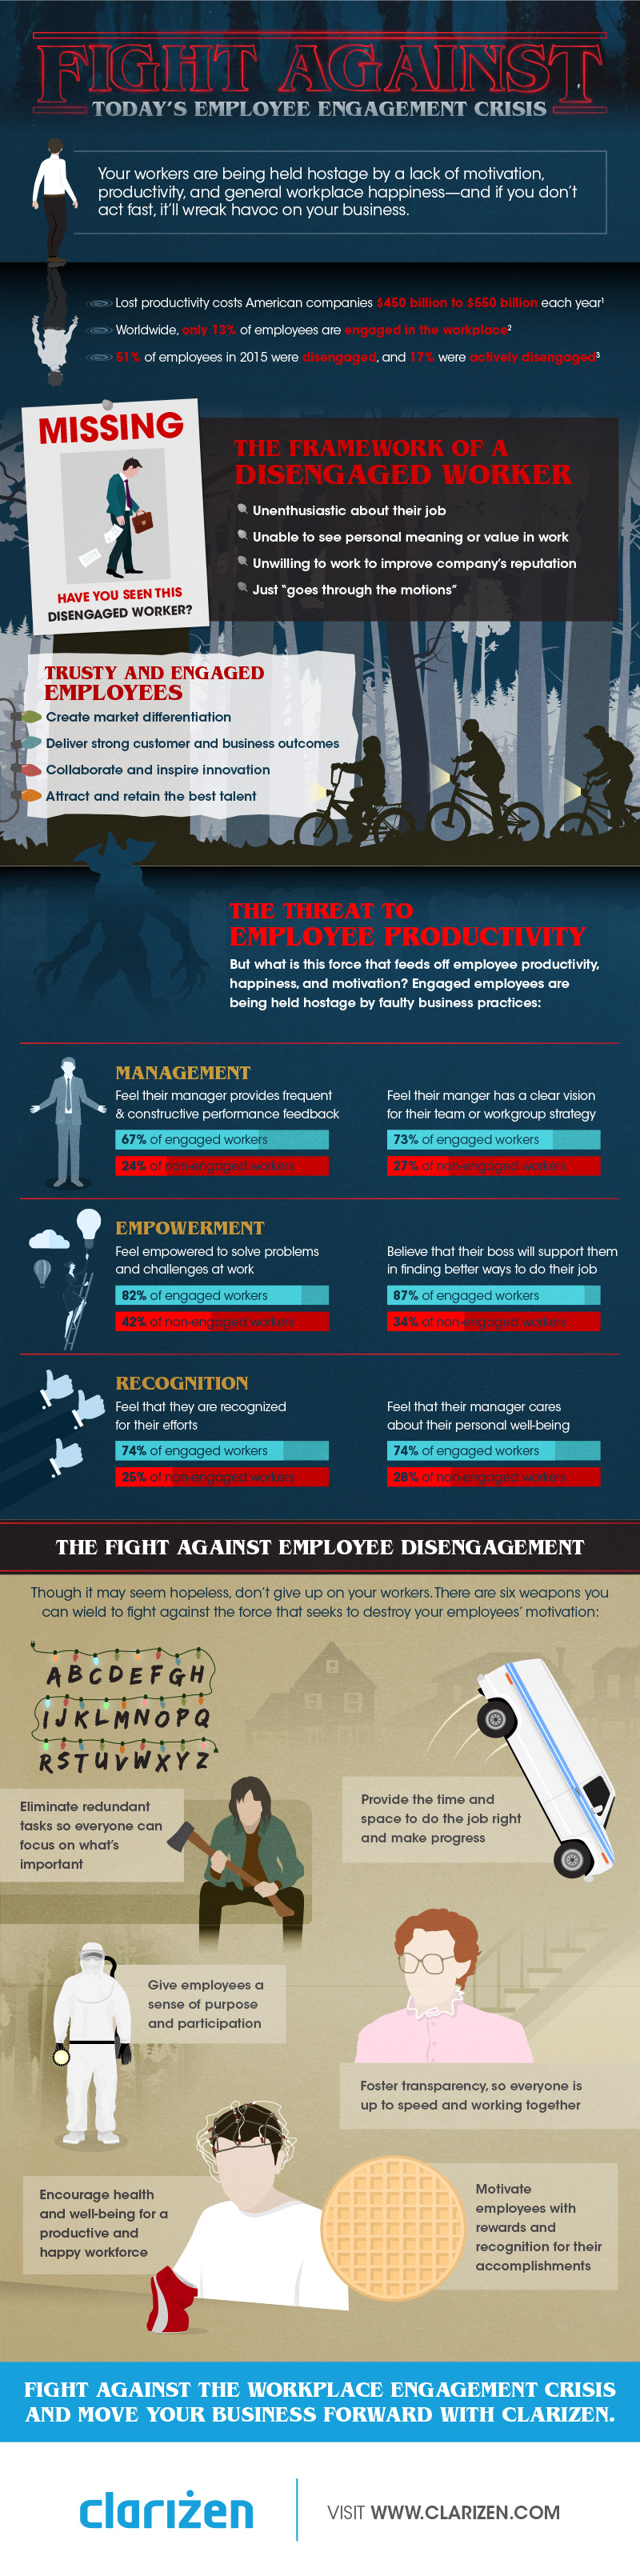 Fight Against Today's Employee Engagement Crisis